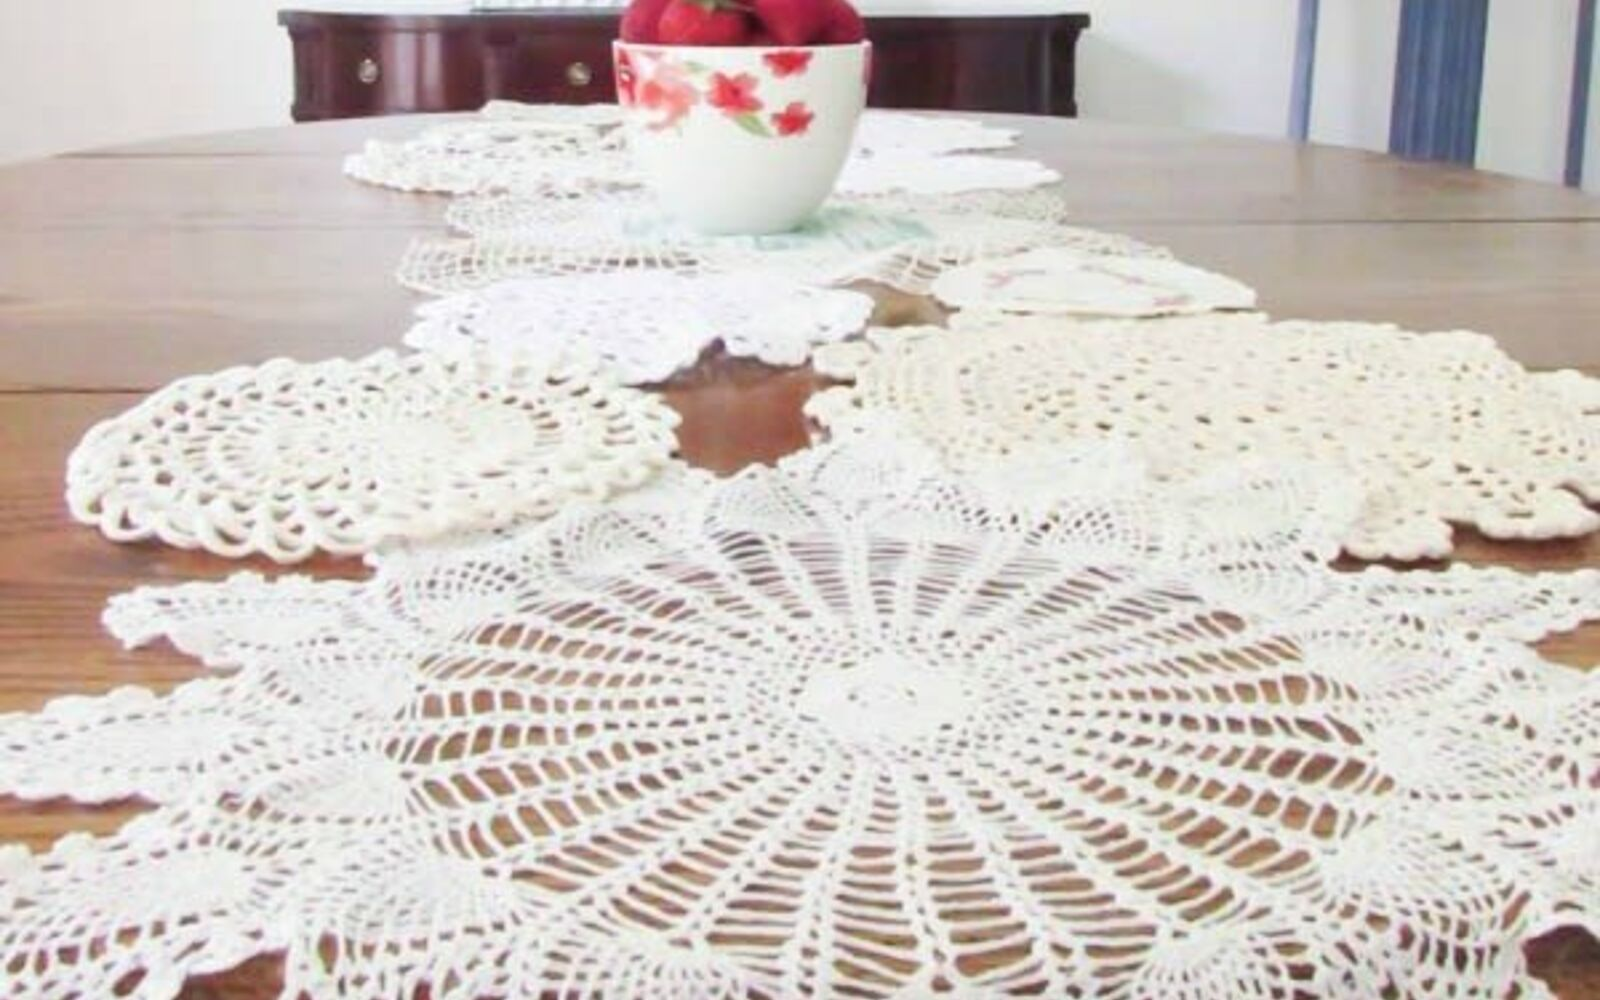 s 13 stunning vintage fabric ideas that ll send you to the thrift store, crafts, repurposing upcycling, reupholster, Vintage Doilies to Table Runner